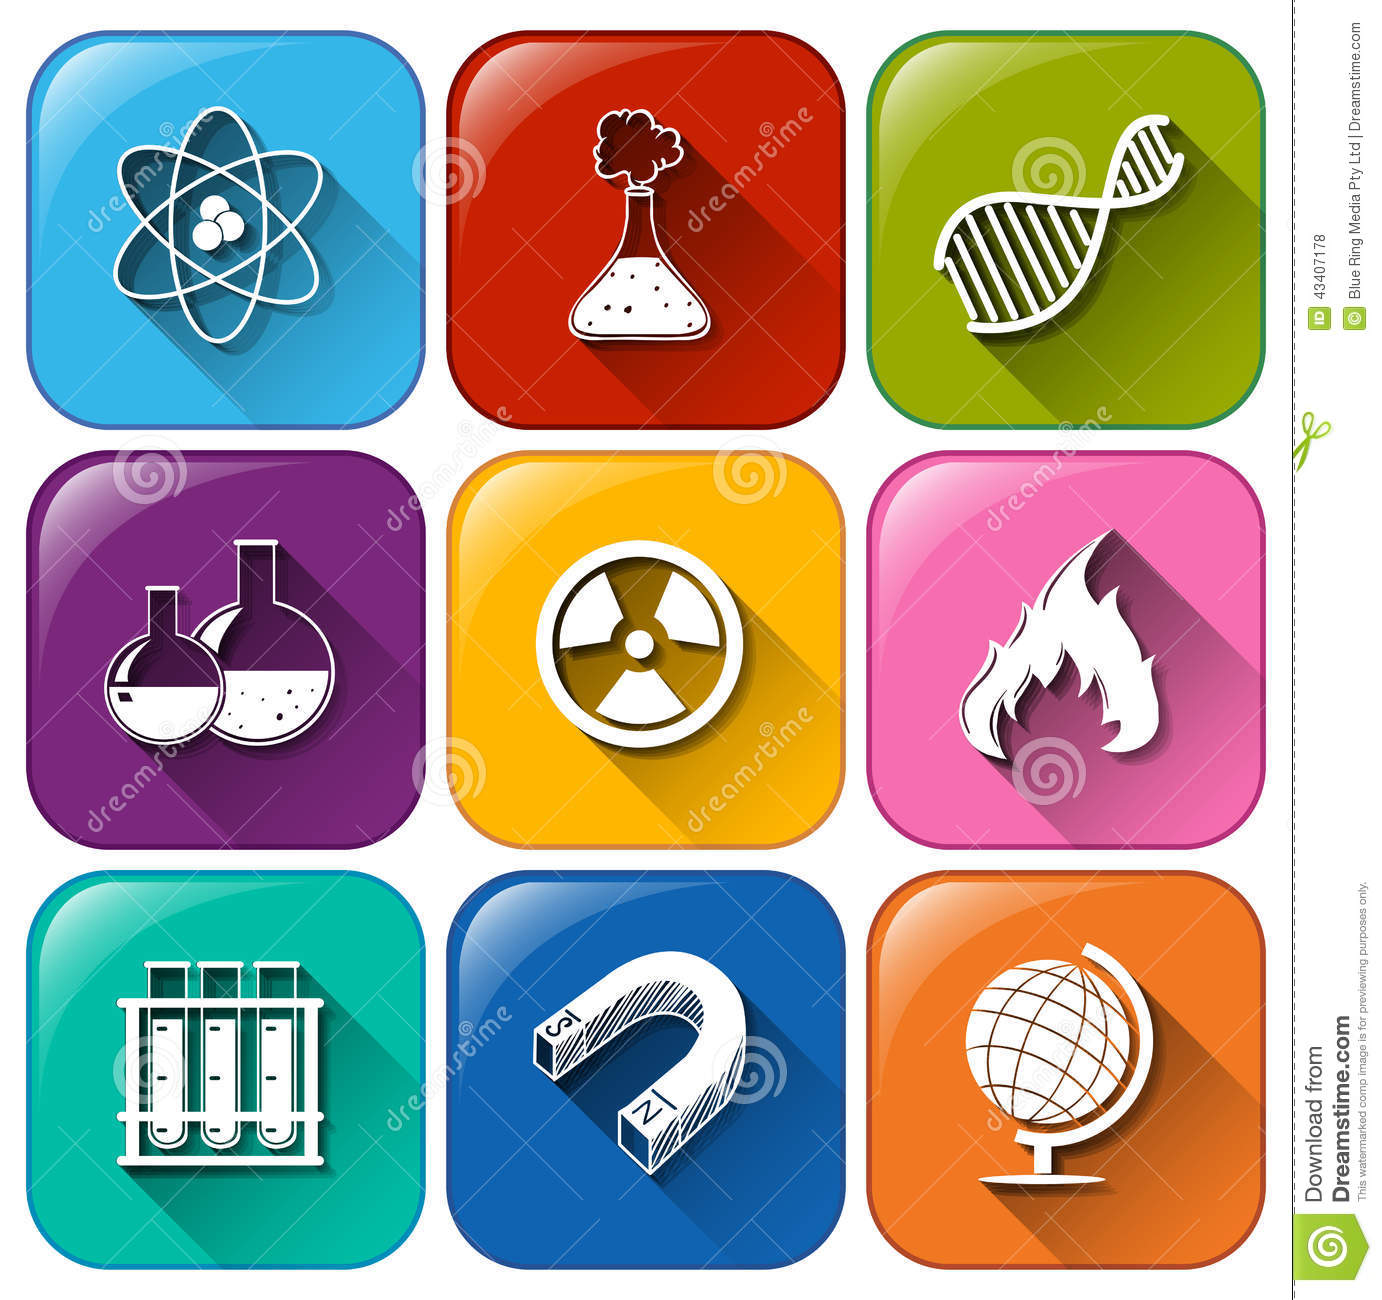 science object icons stock vector illustration of magnet 43407178